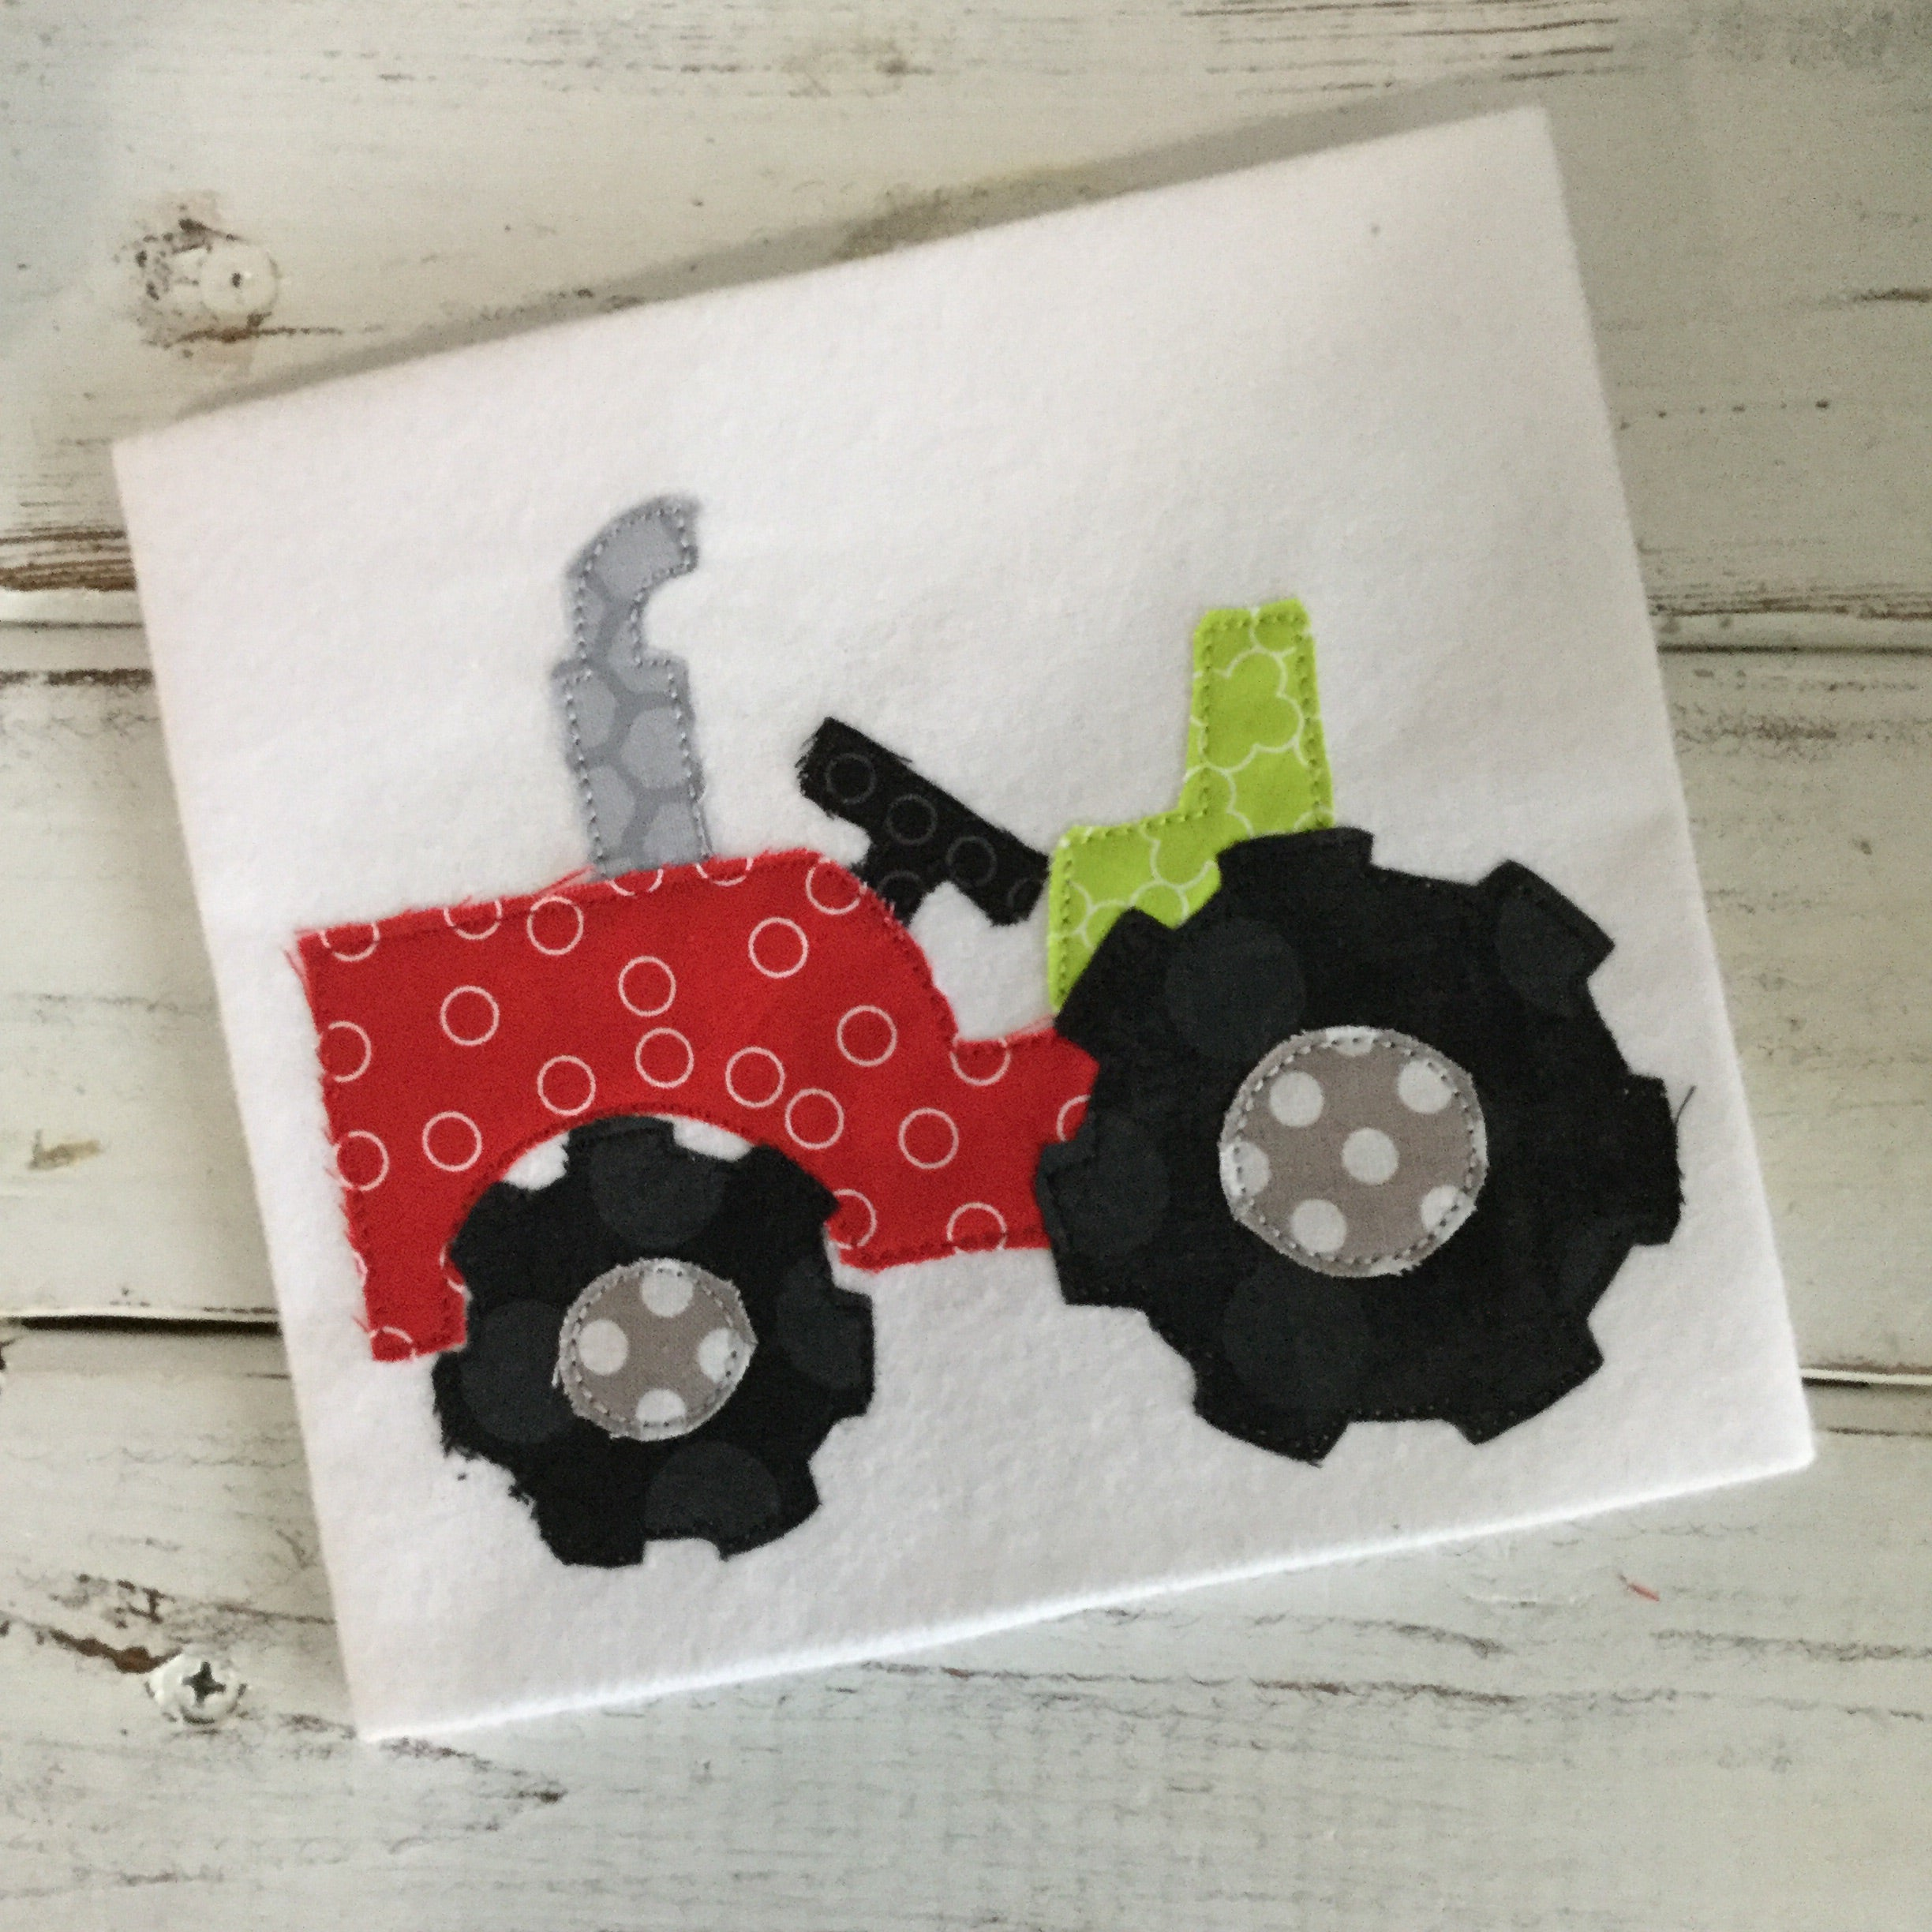 Tractor Bean Stitch Applique Design - Hug A Bug Applique Designs